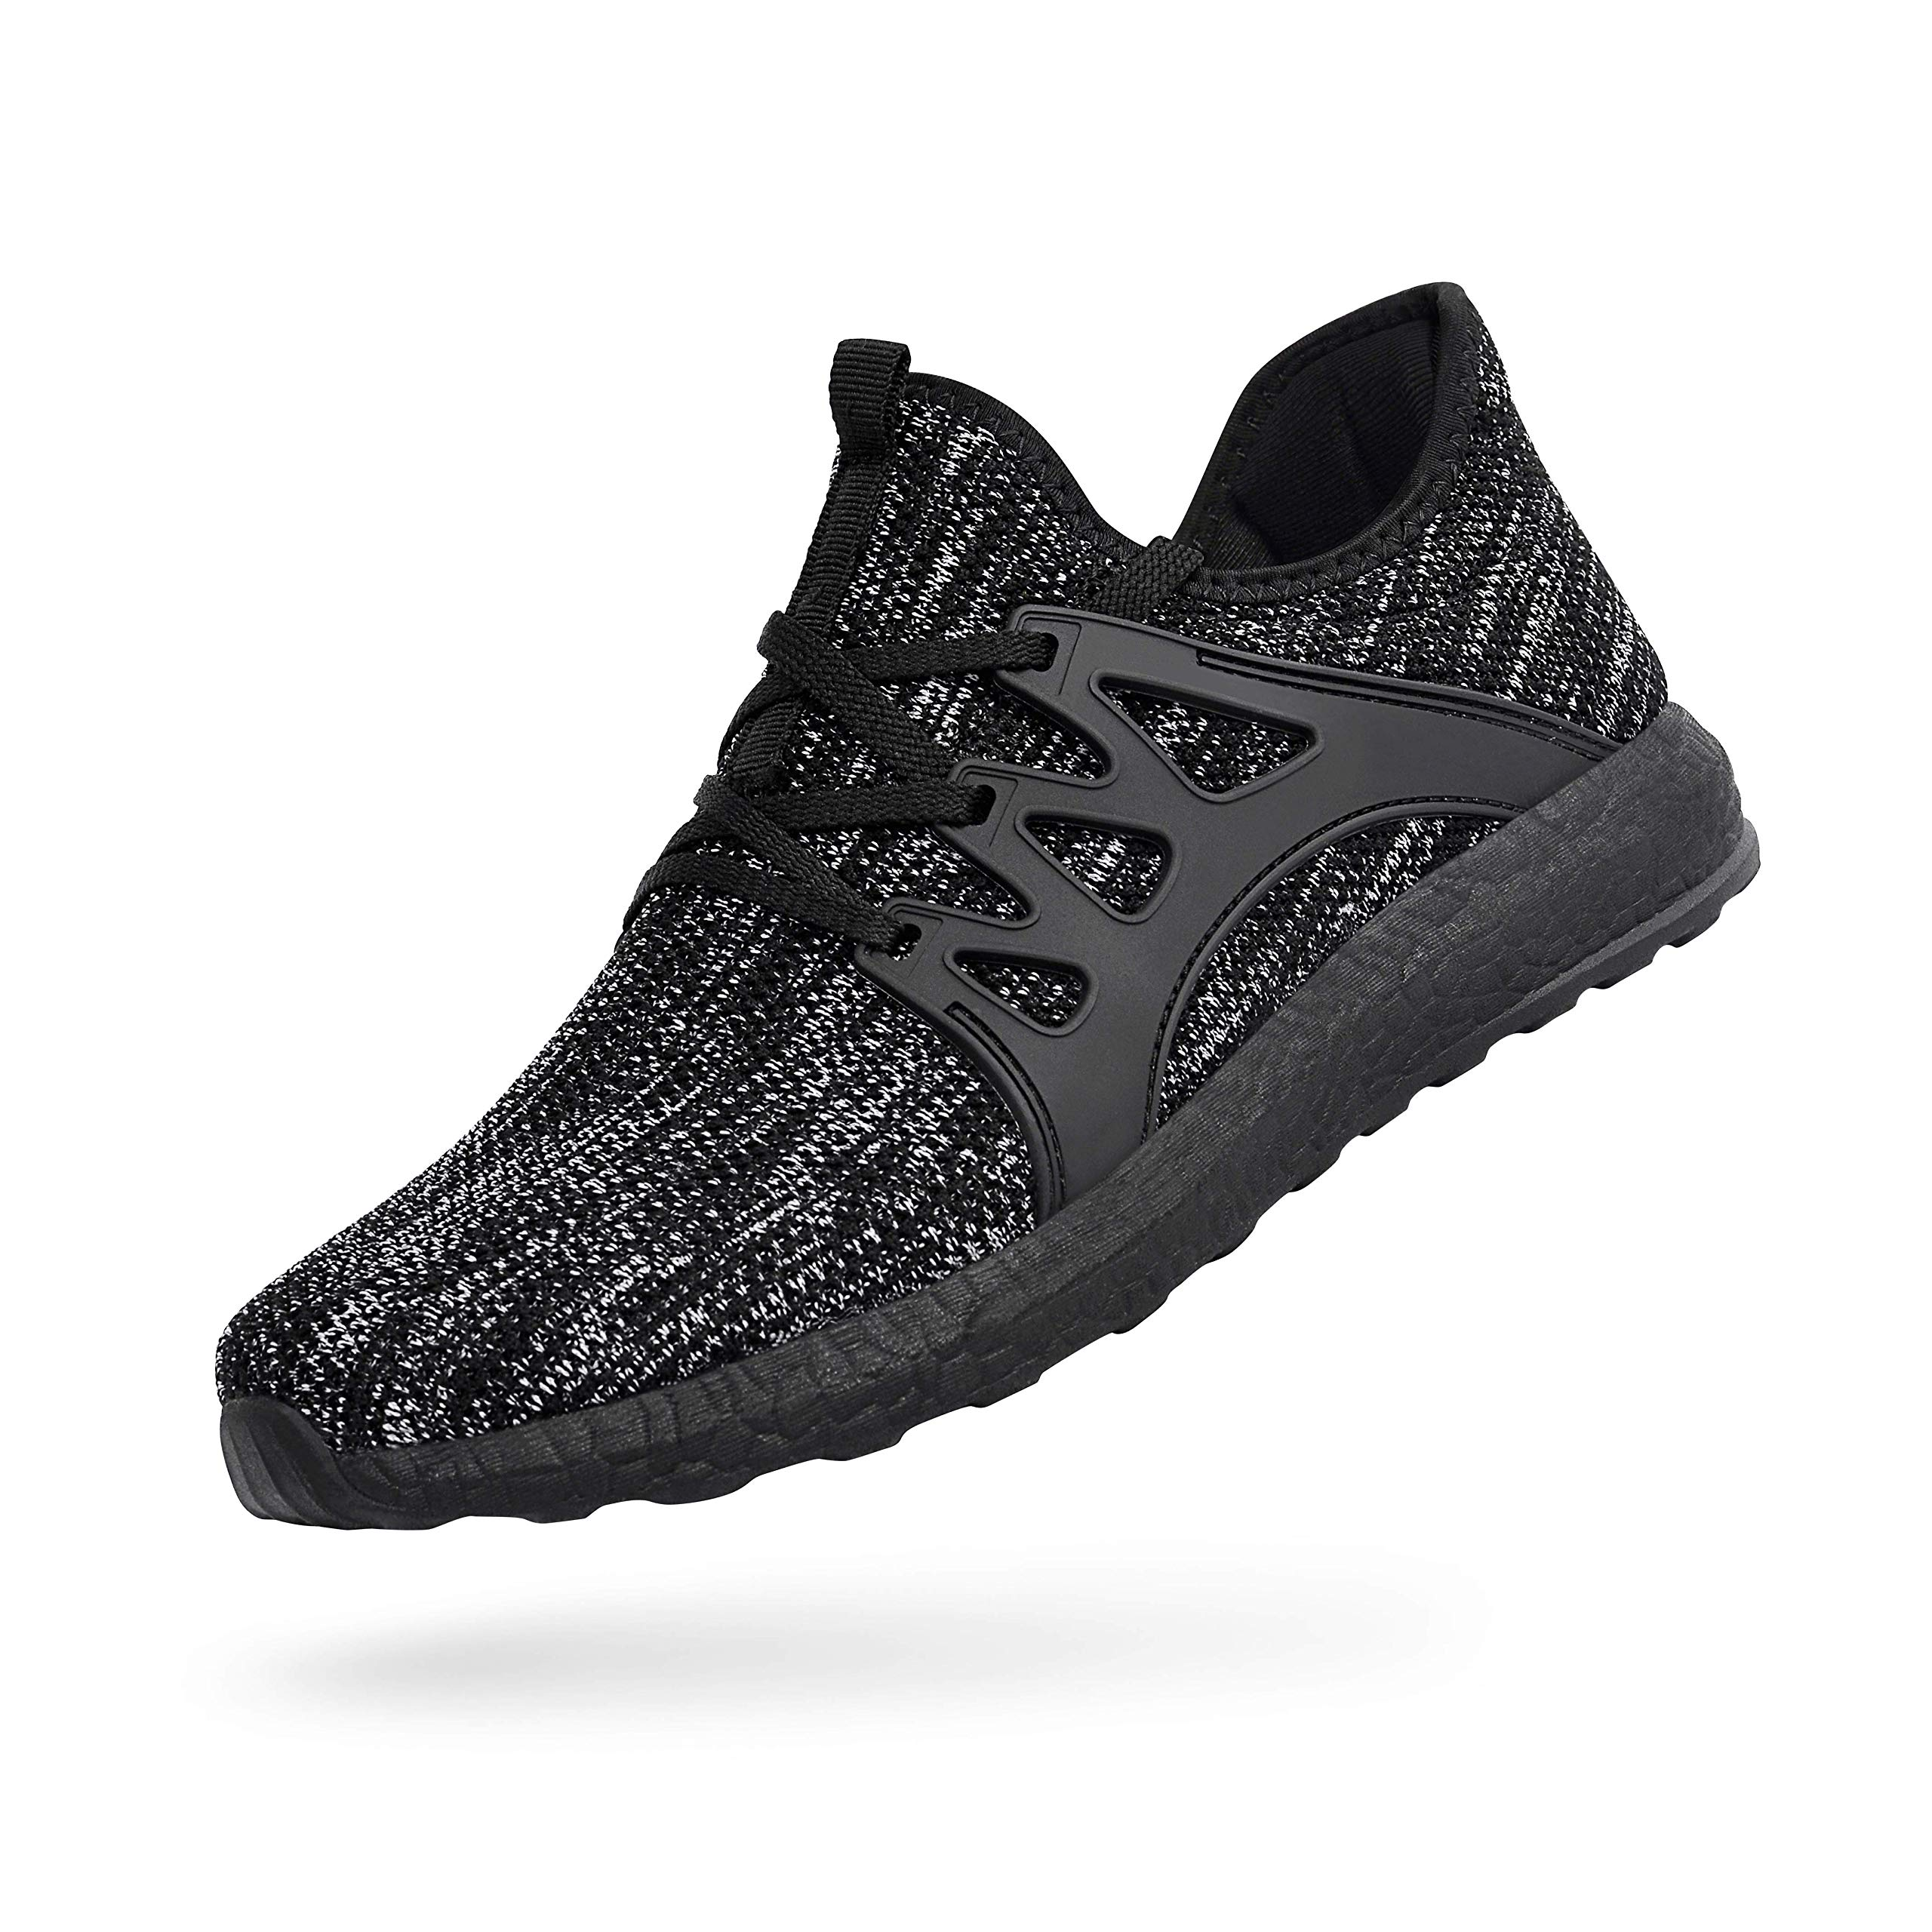 QANSI Men's Training Sneakers Gray/Black Athletic Running Shoes Breathable Mesh Causal Work Shoes - Size 12